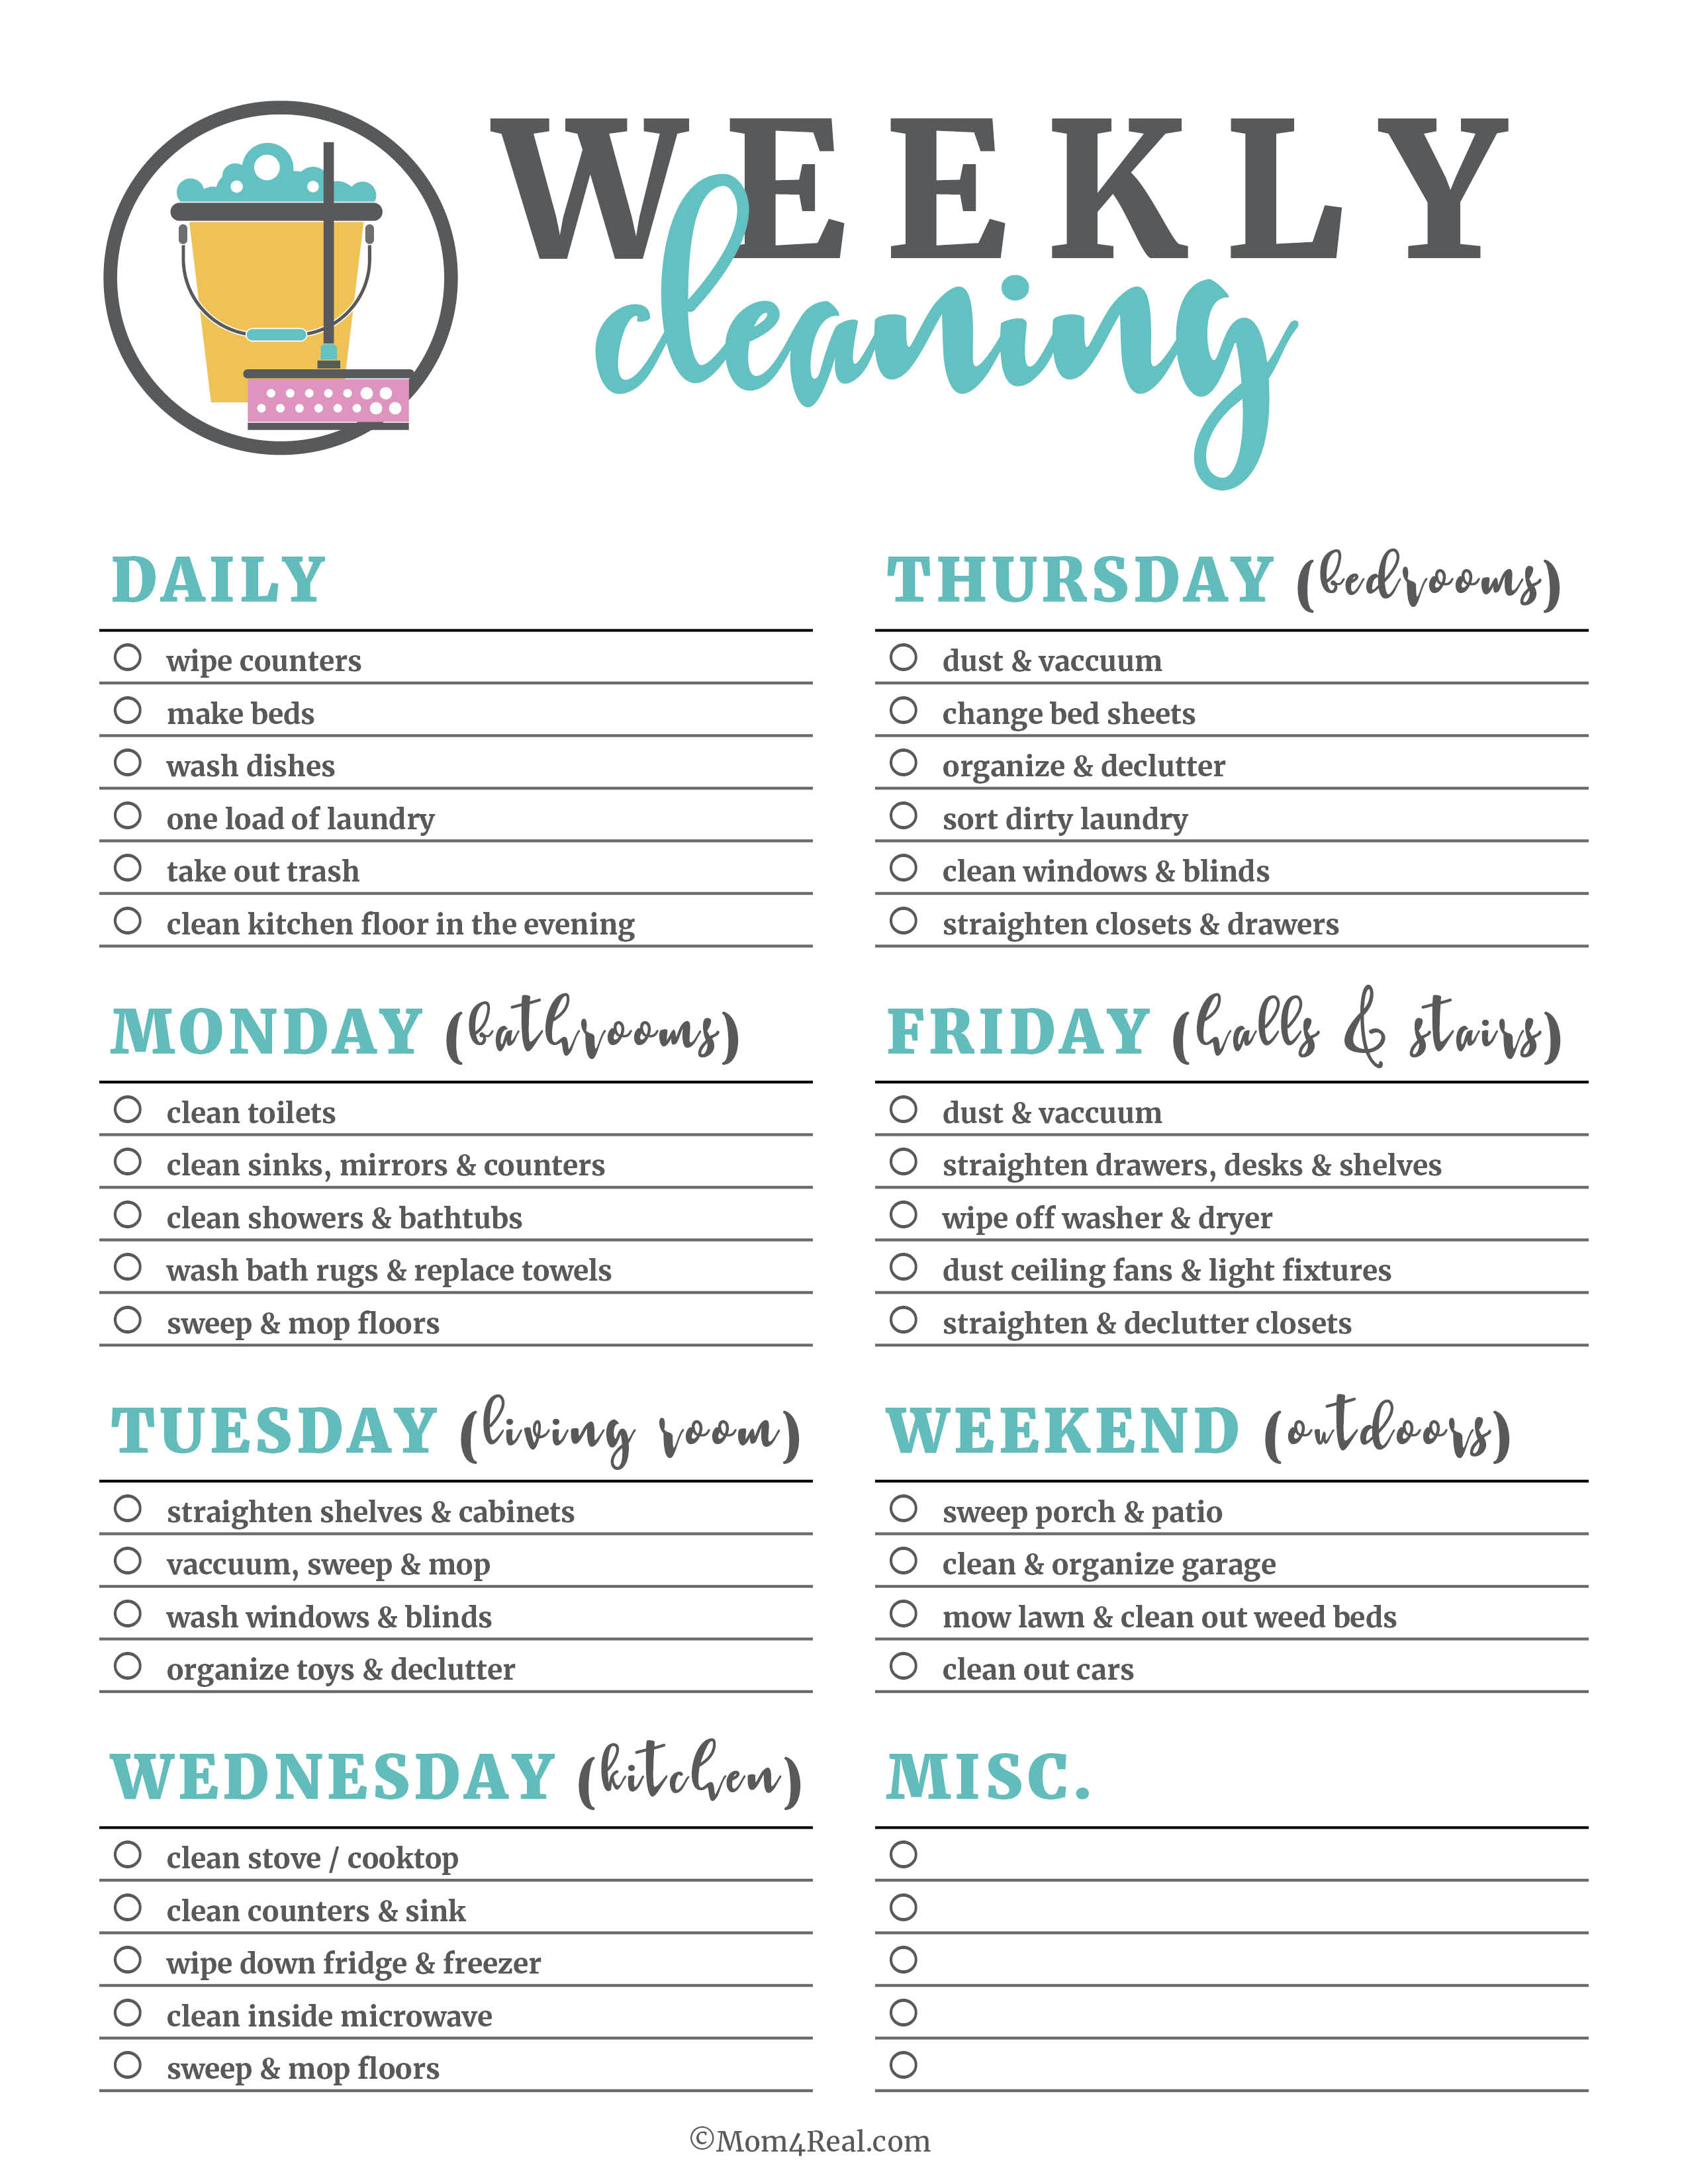 Printable Cleaning Checklists For Daily, Weekly And Monthly Cleaning - Free Printable Housework Checklist